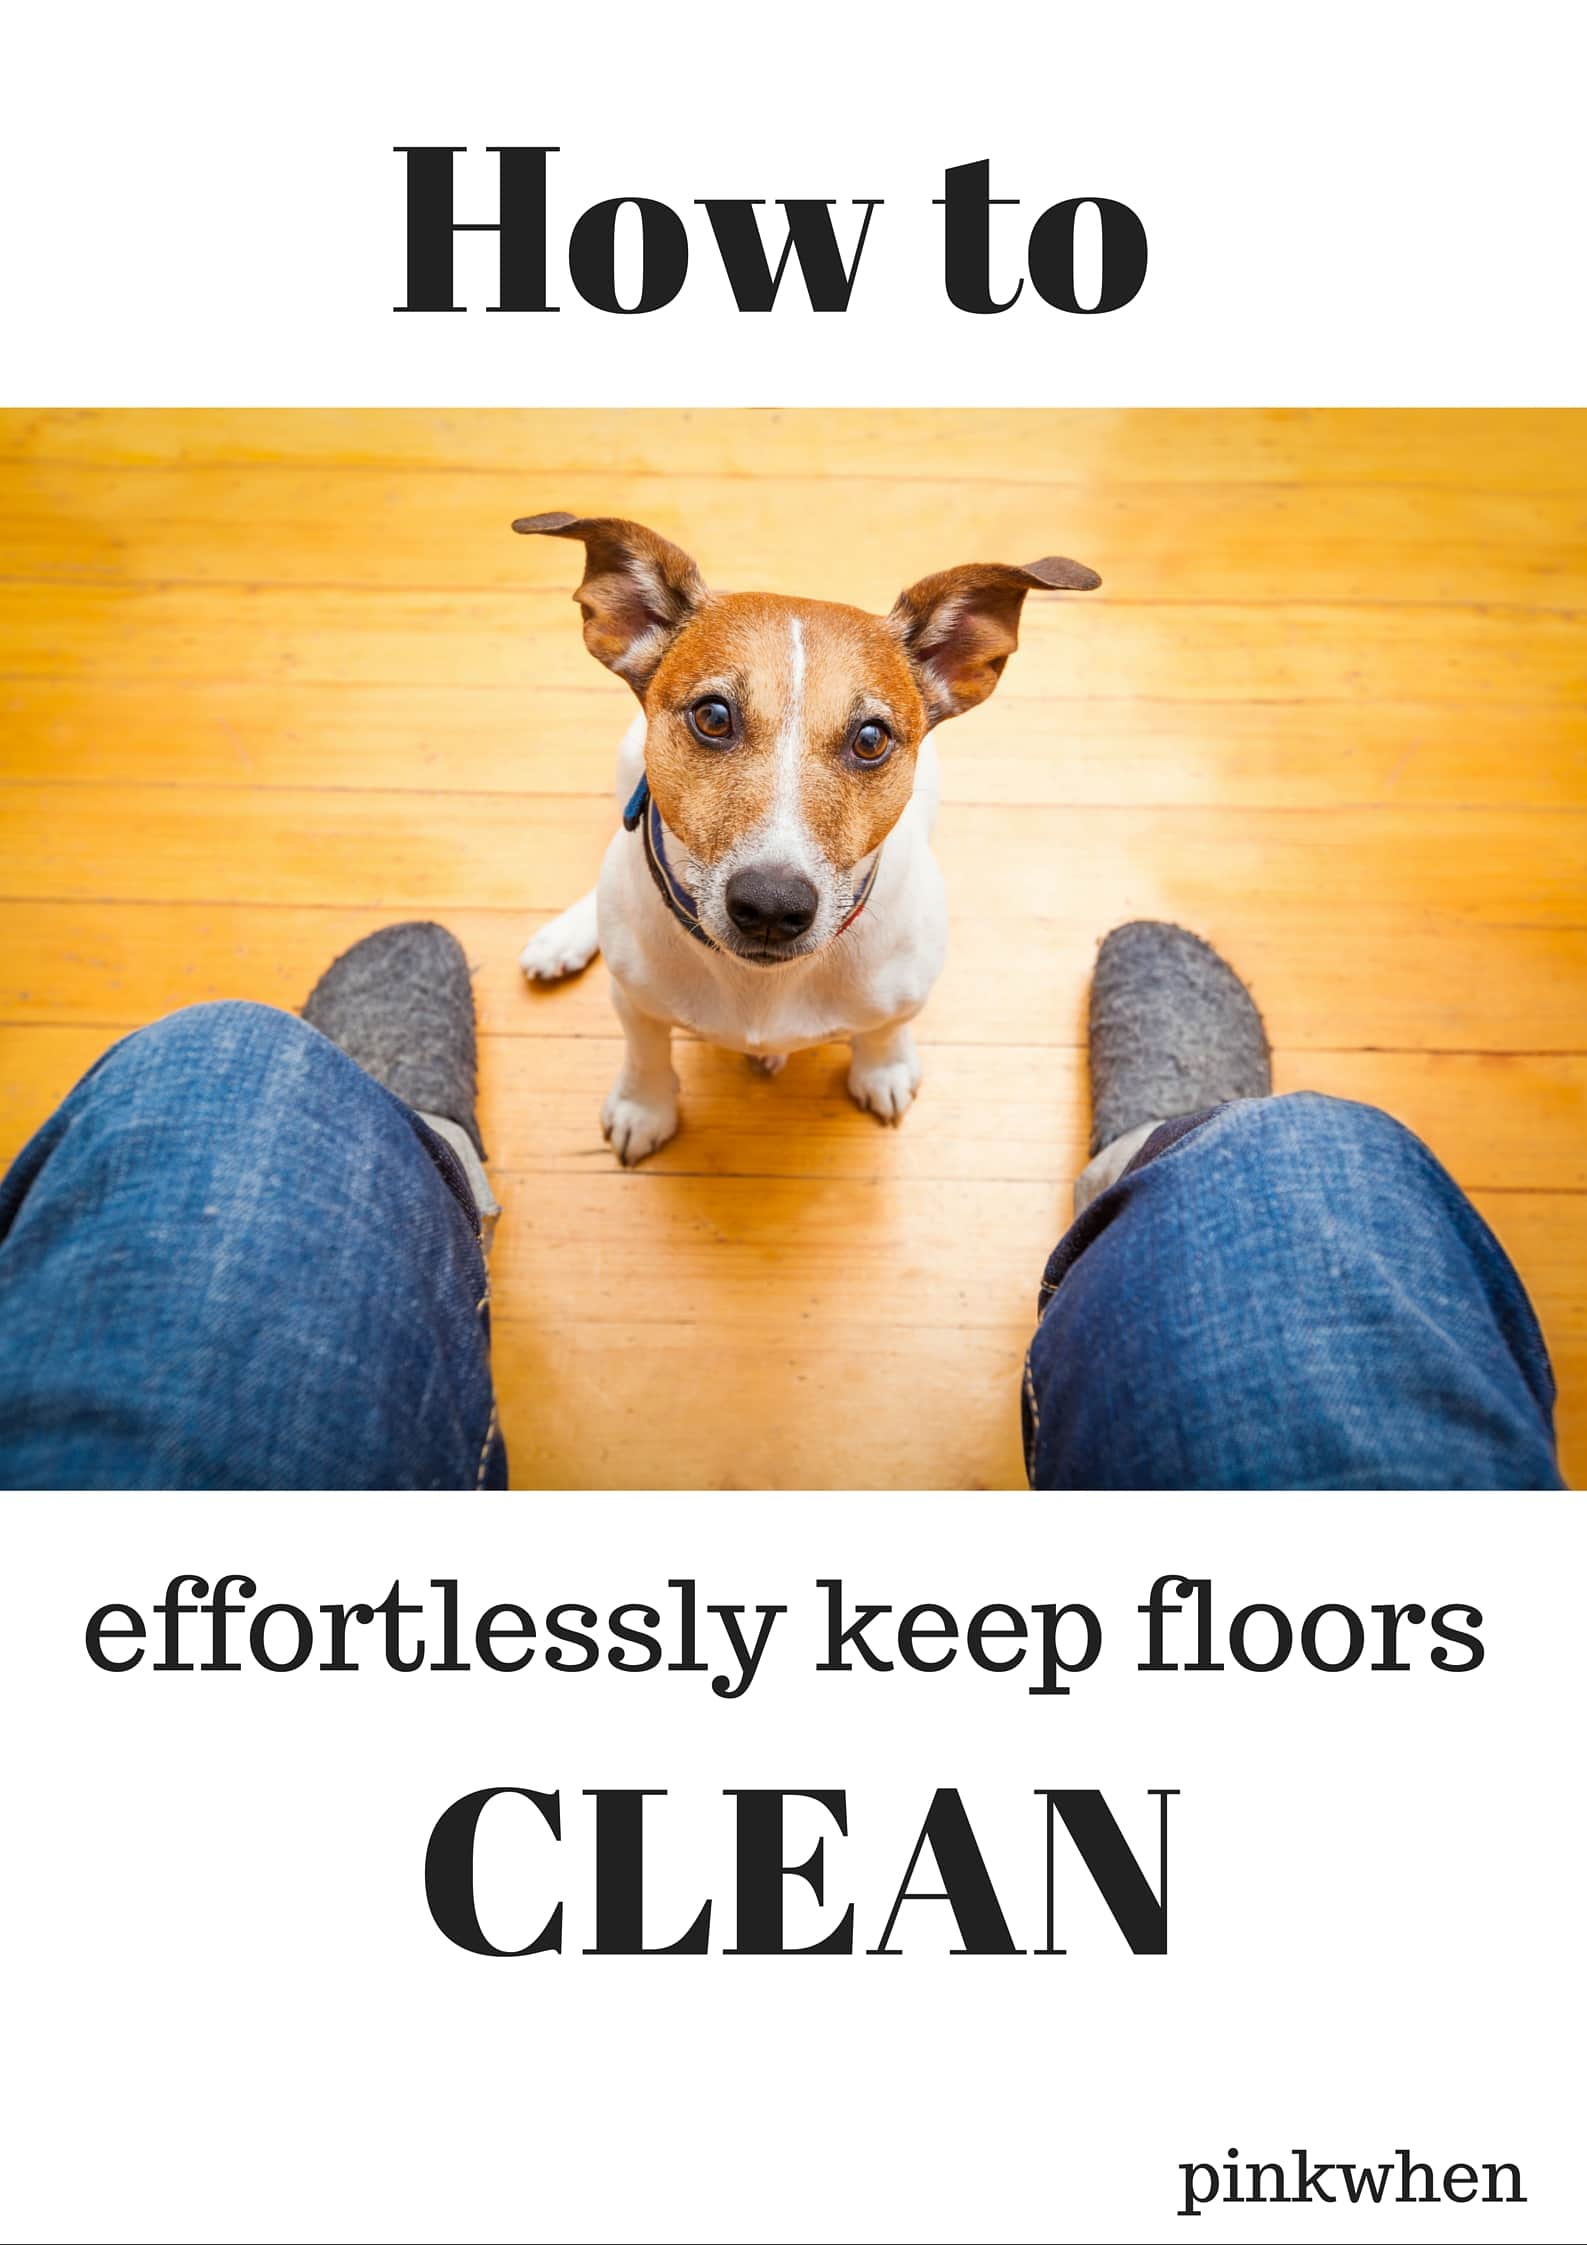 How to keep floors effortlessly clean with just a few simple tricks!